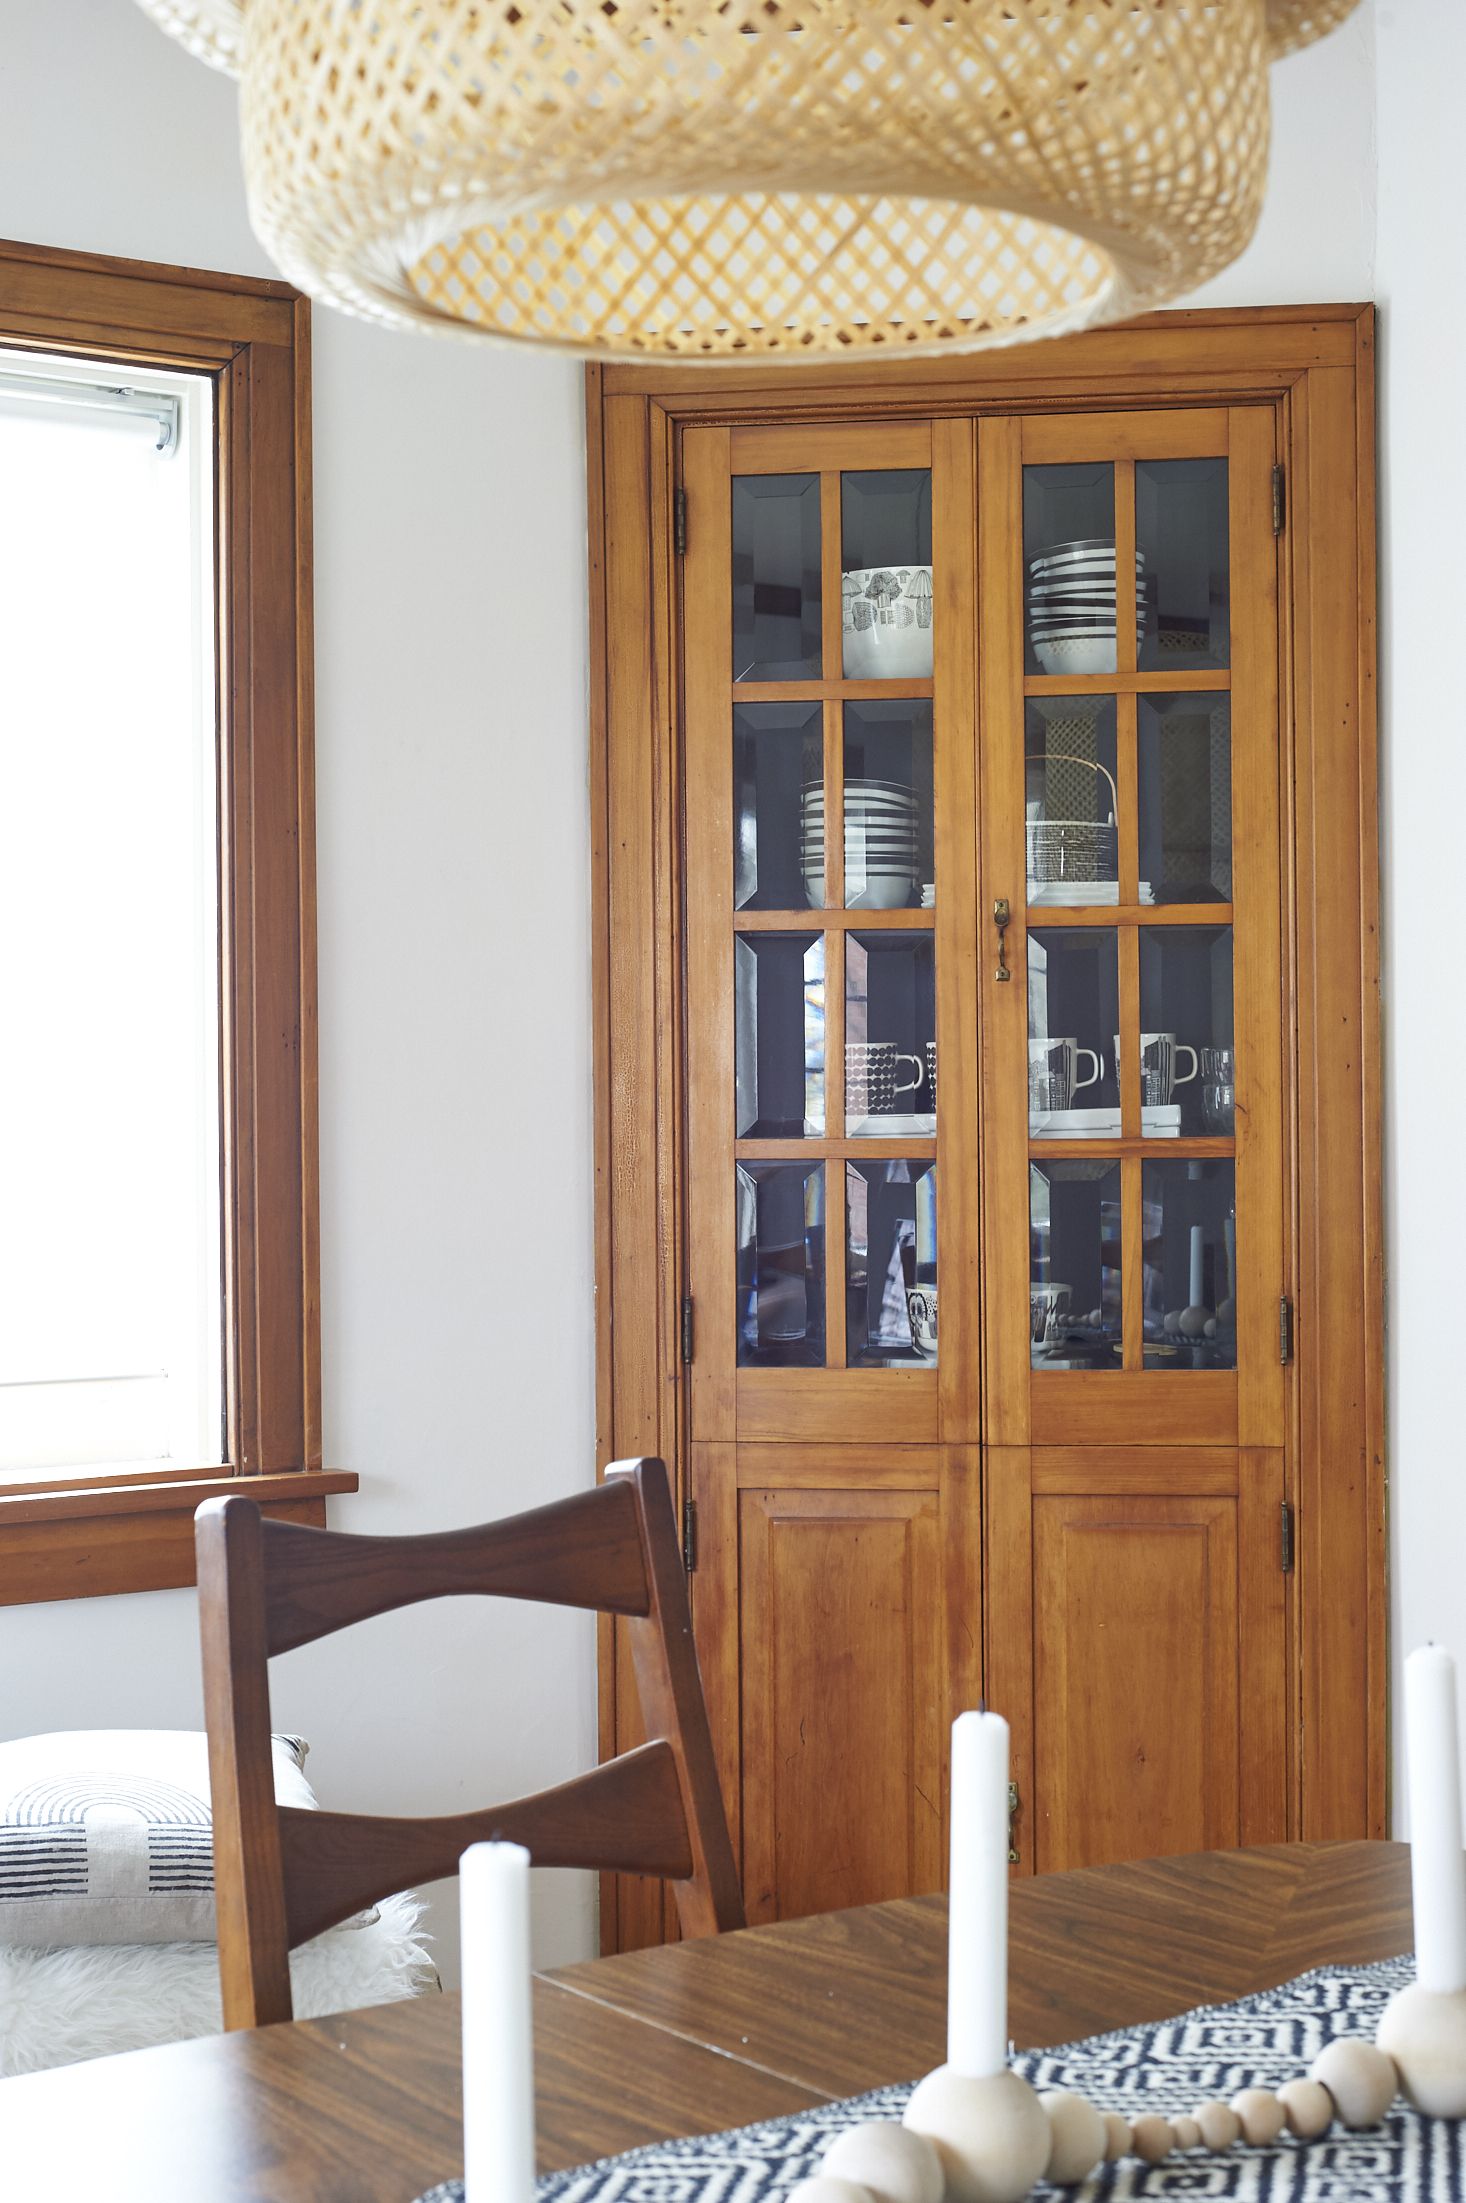 There Are Lovely Built Ins With Beveled Glass Doors Housed In Two Corners  Of The Room On The Exterior Wall. The Inside Was Painted A 90s Cranberry  Shade ...